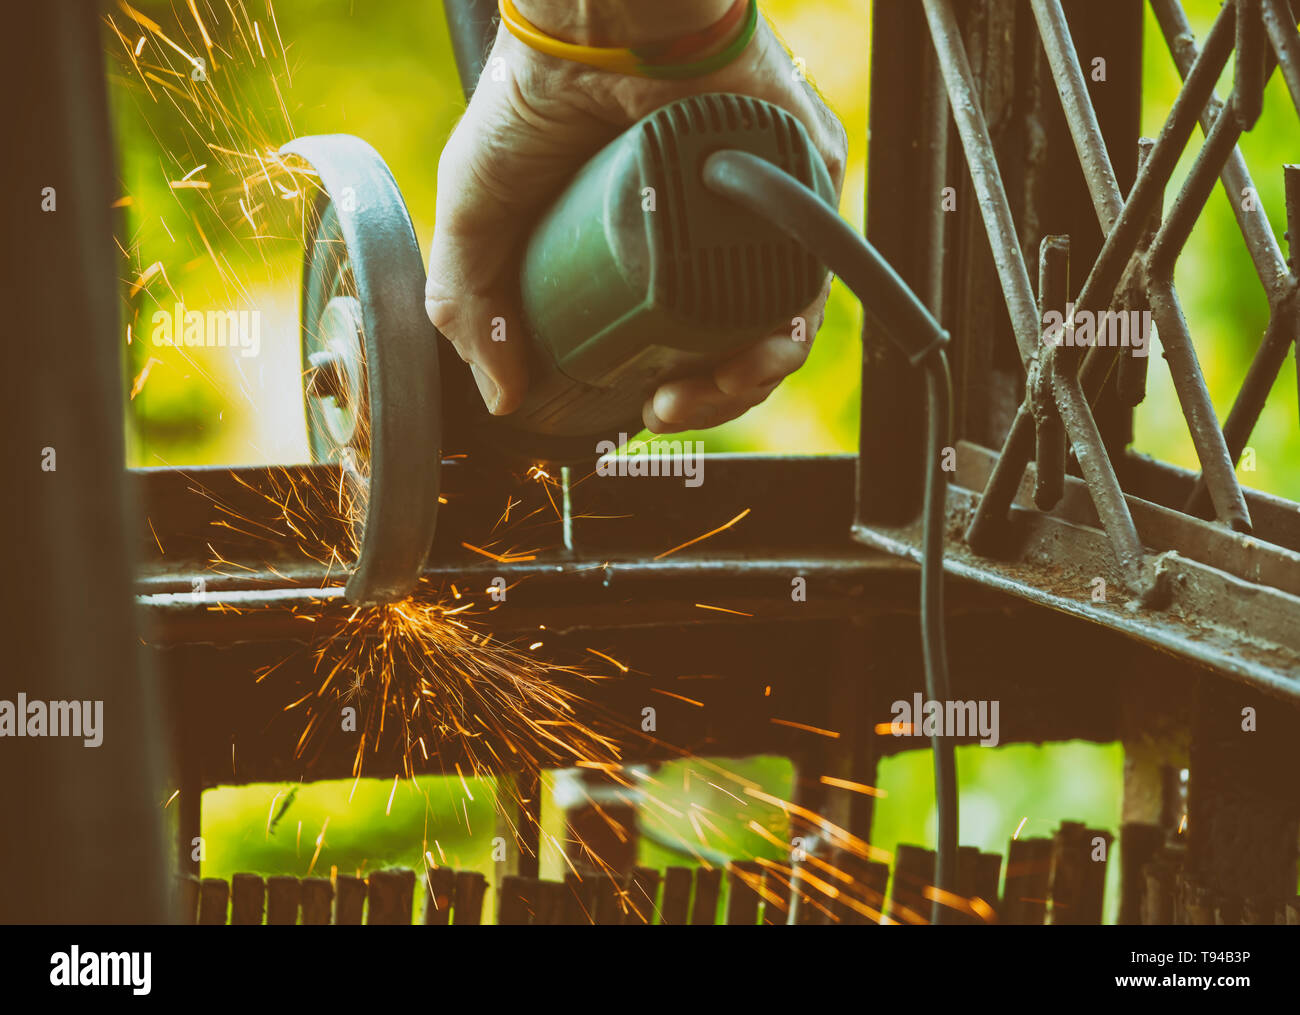 Man using angle grinder, cutting metal, a lot of flashing sparks are flying. - Stock Image